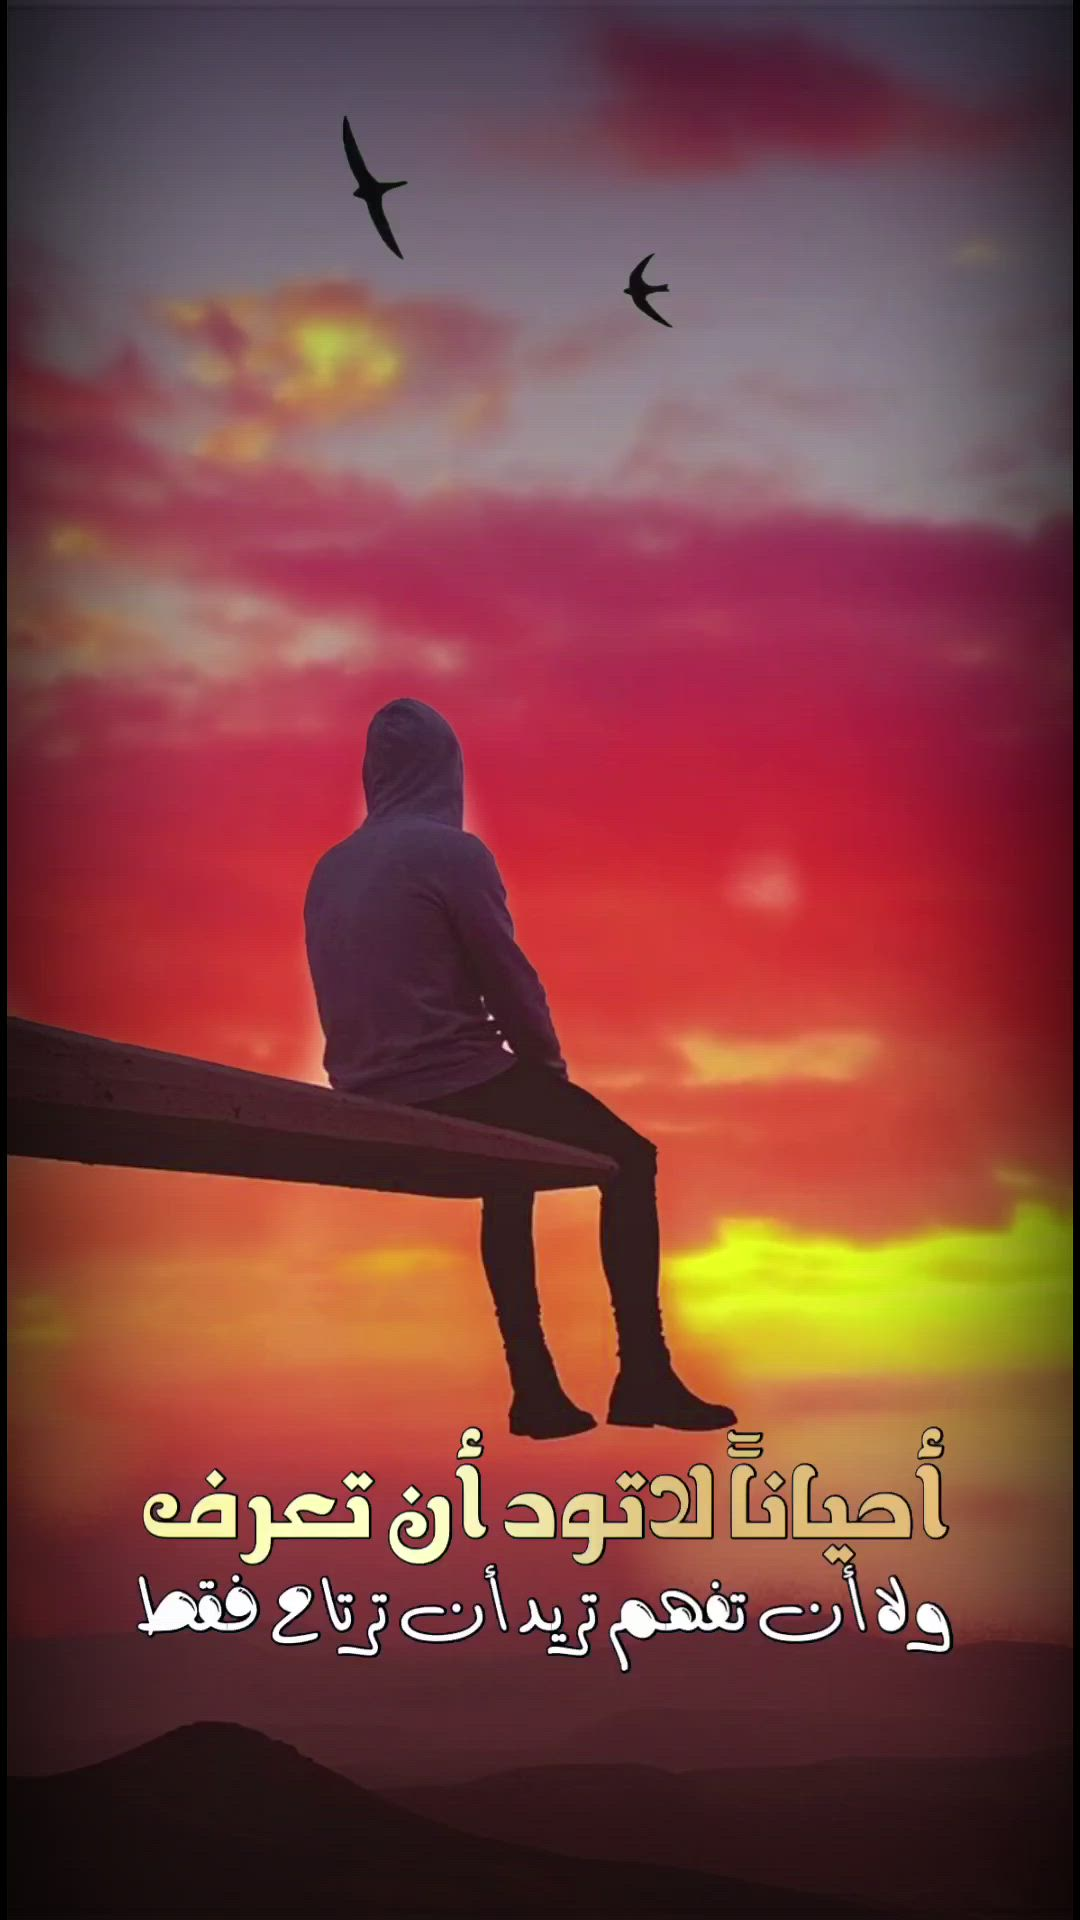 Pin By Bymaj On Black Books Quotes Video In 2021 Black Books Quotes Anime Wallpaper Live Arabic Love Quotes